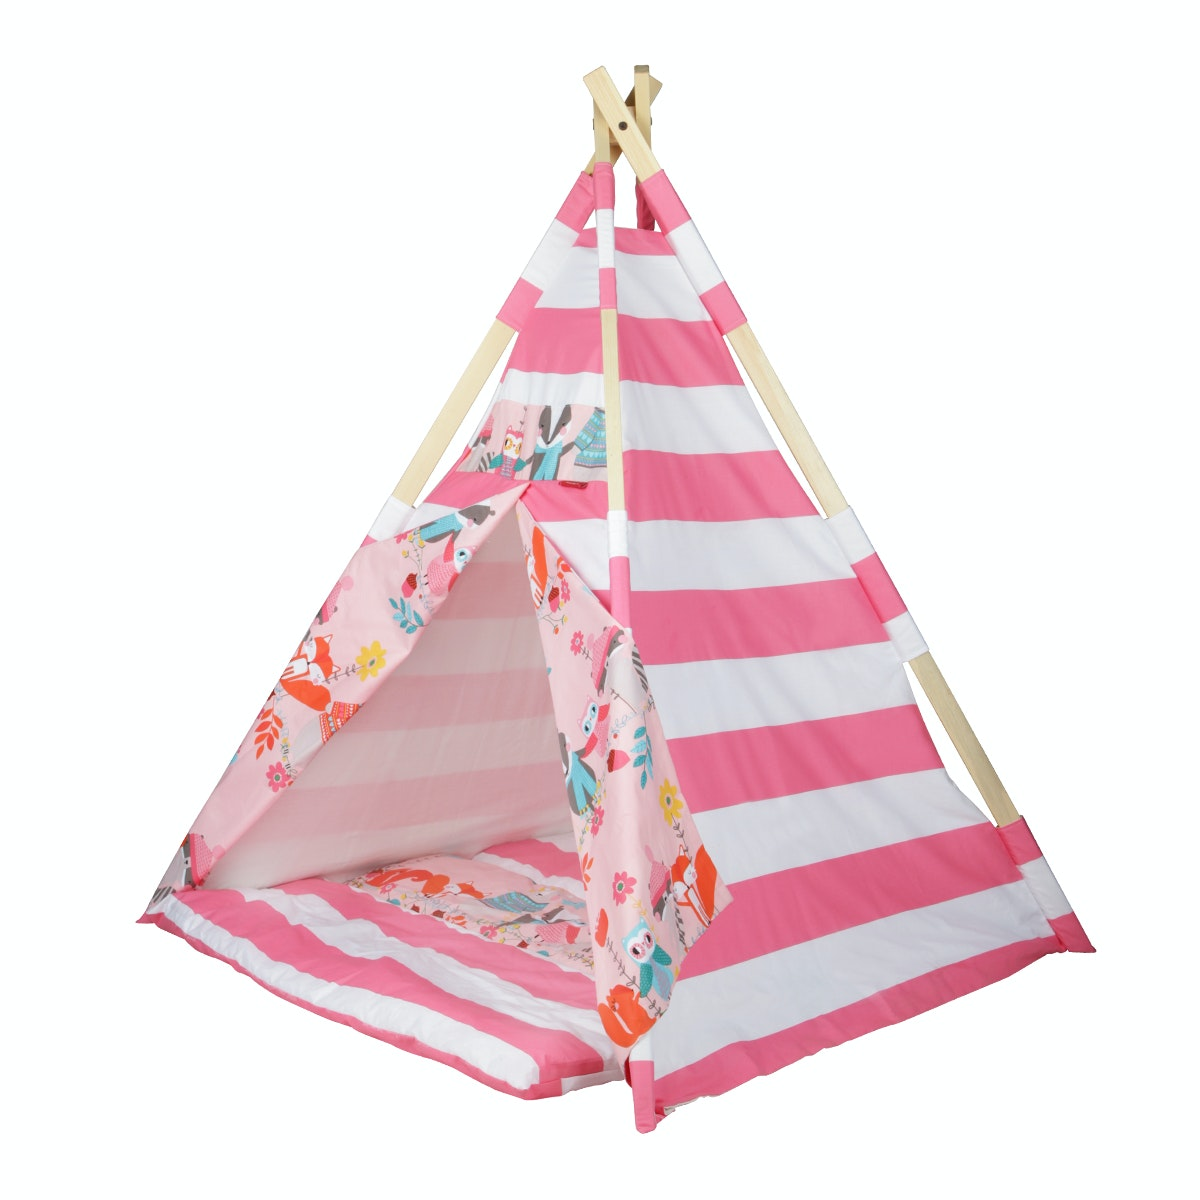 Myka_kids Teepee Pink Woodland Animals